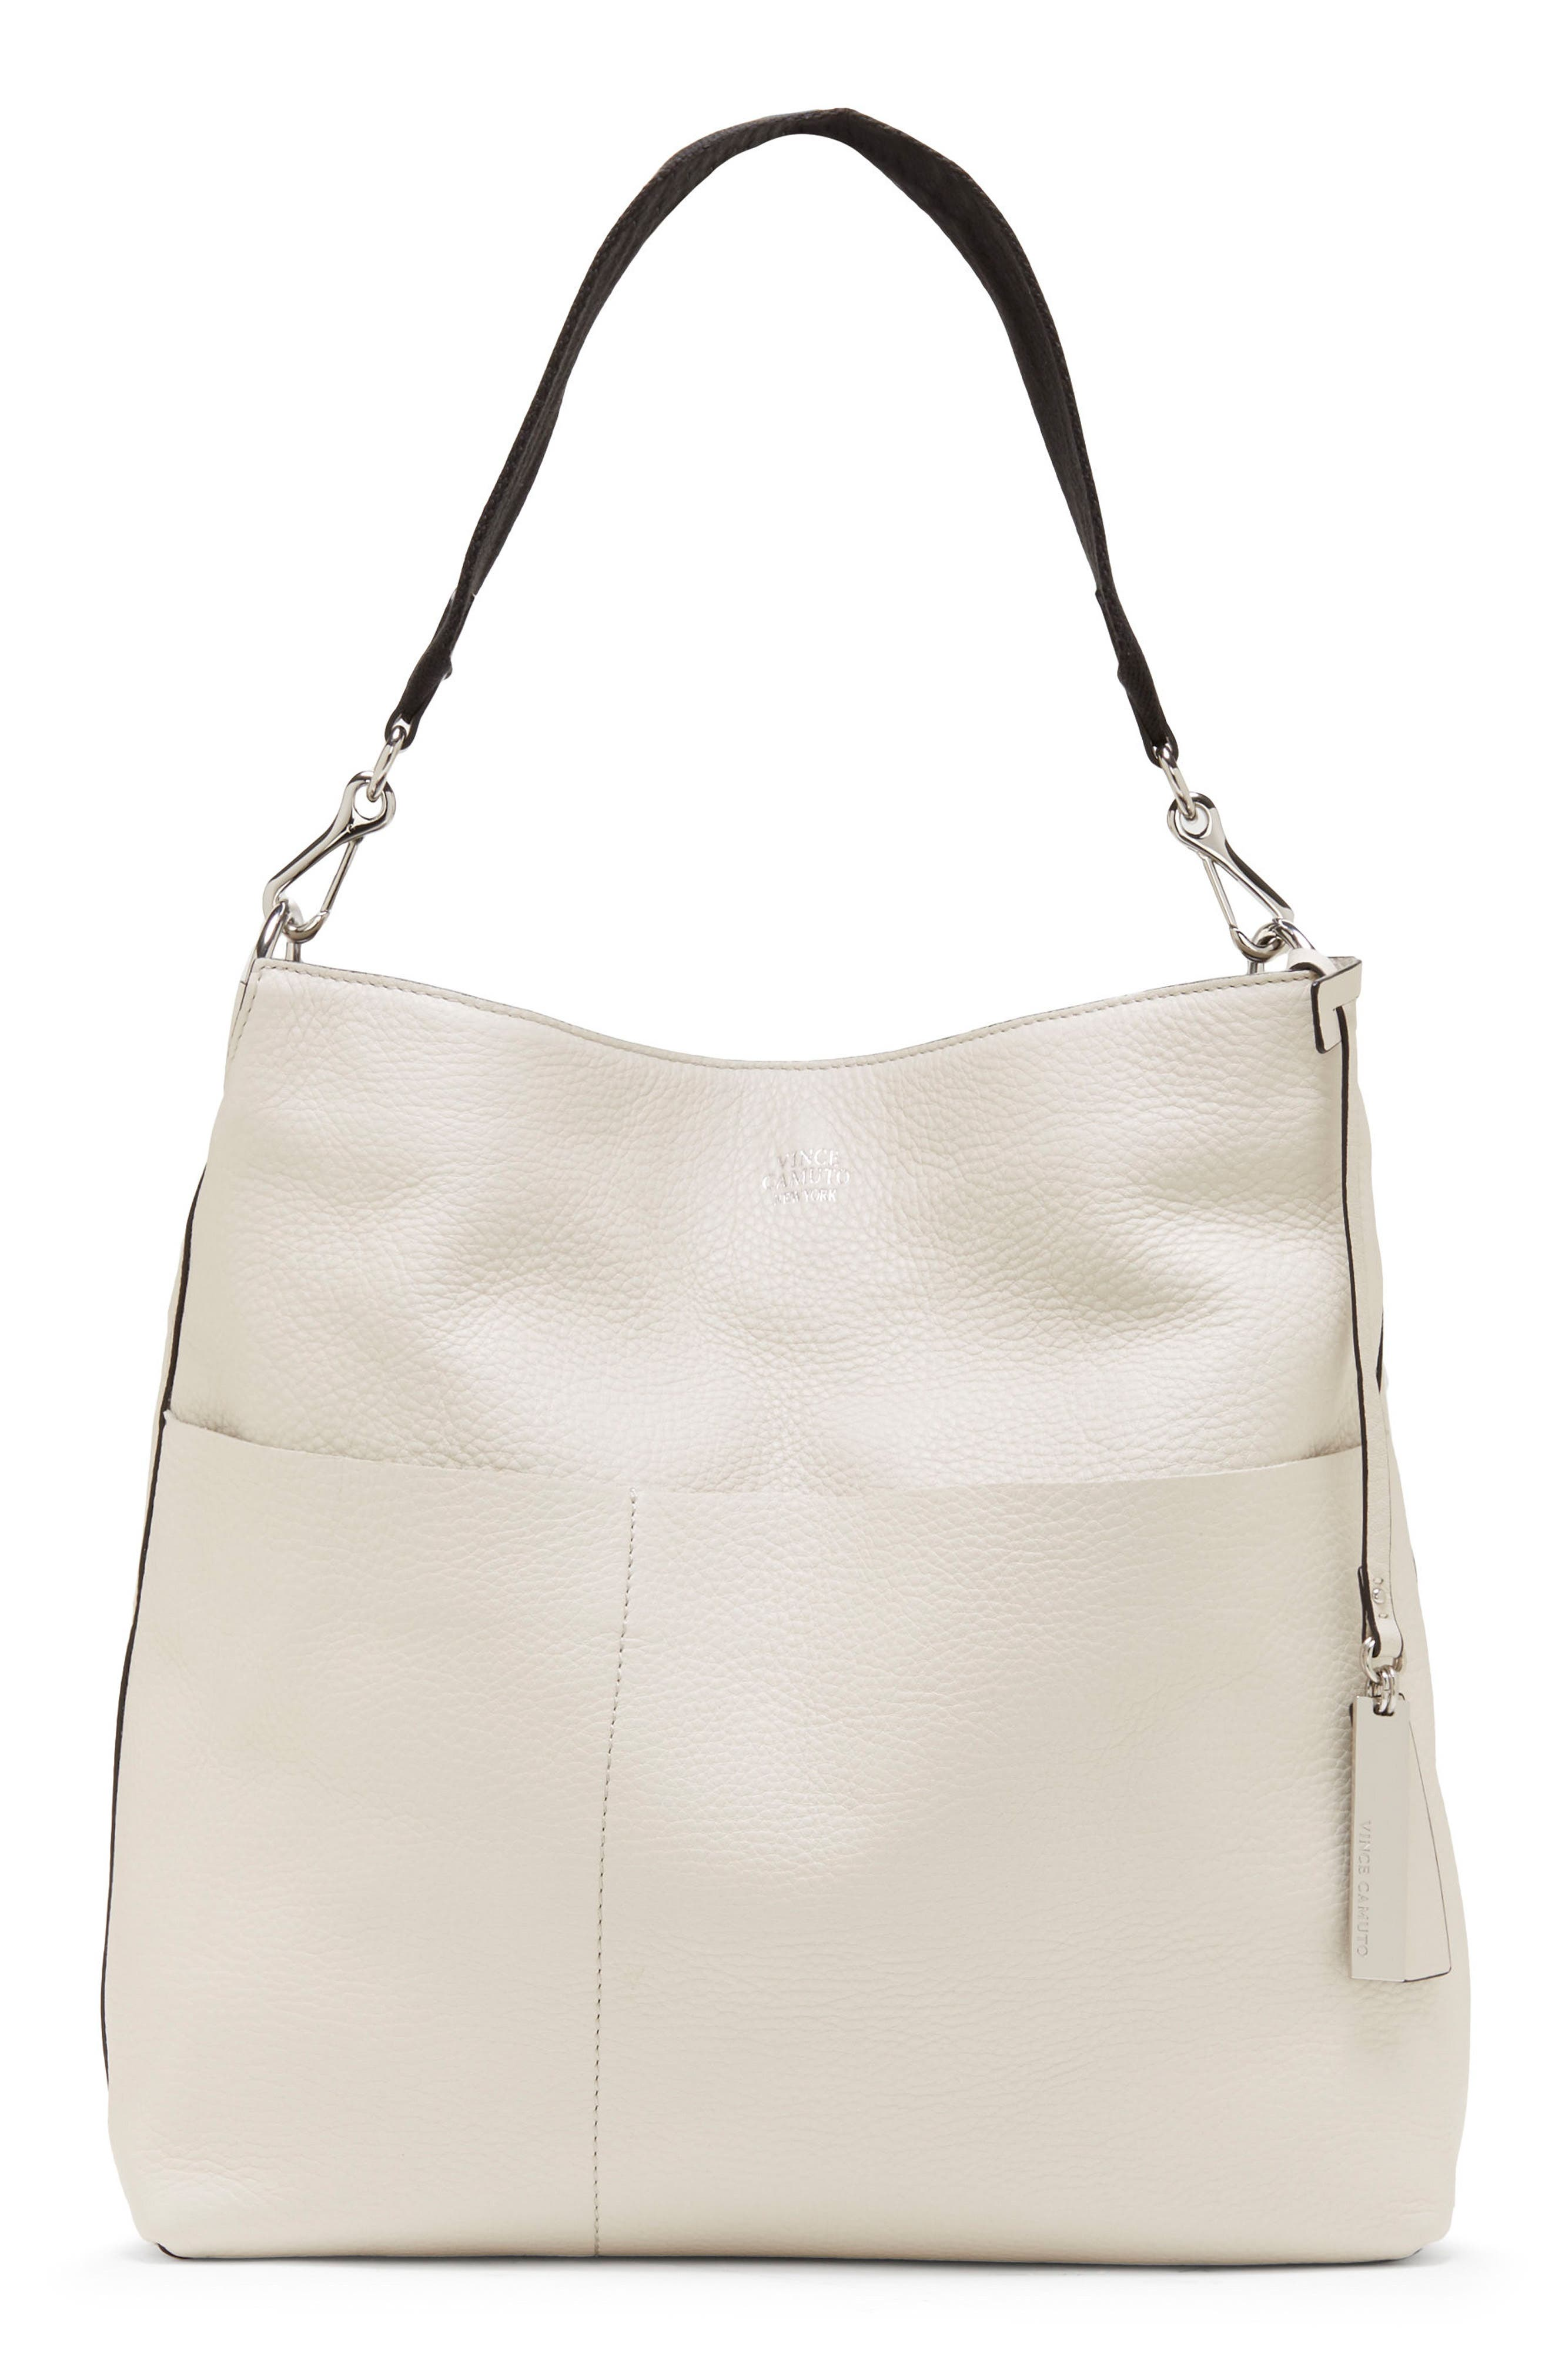 Vince Camuto Risa Leather Hobo